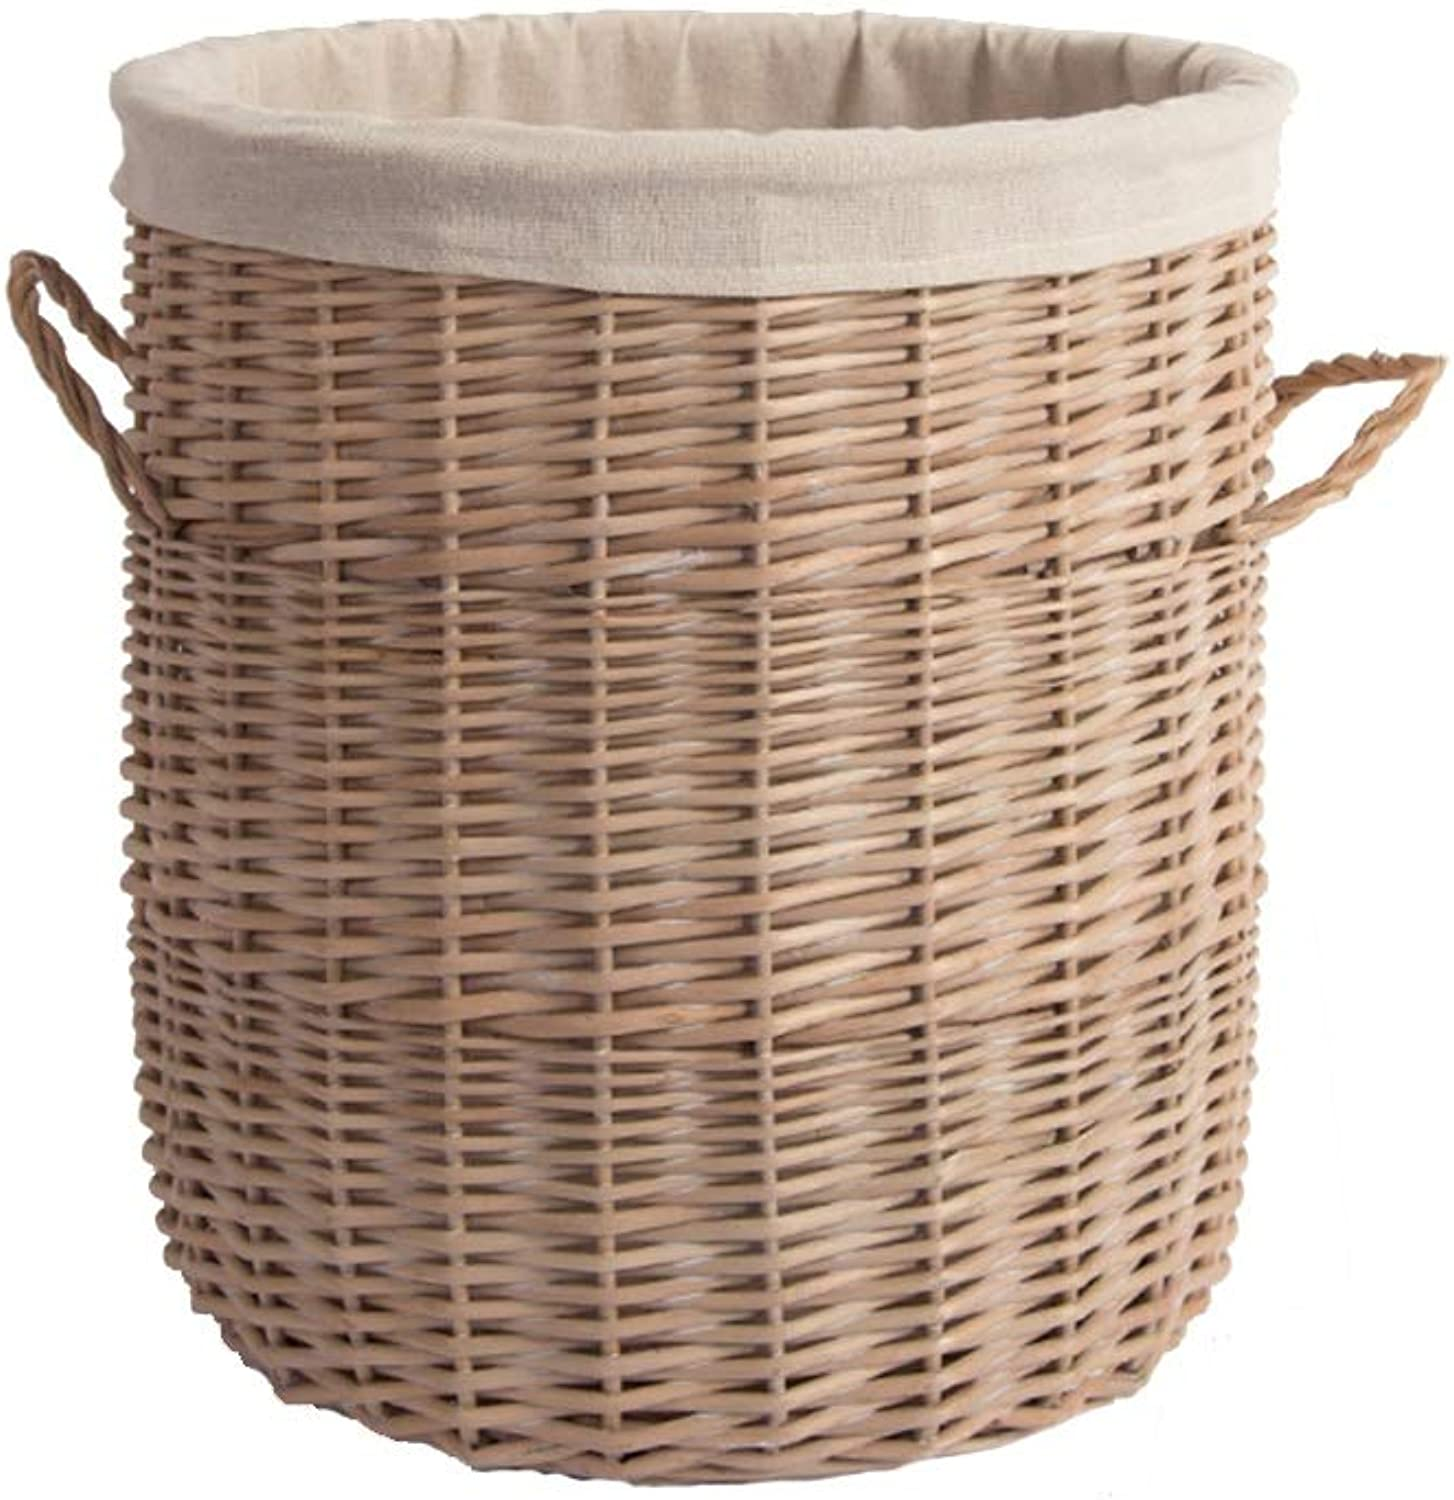 Laundry Hamper Large-Capacity Willow Woven Clothing Storage Basket with Lid Wood color Storage Basket ZHANGQIANG (Size   37cm40cm)